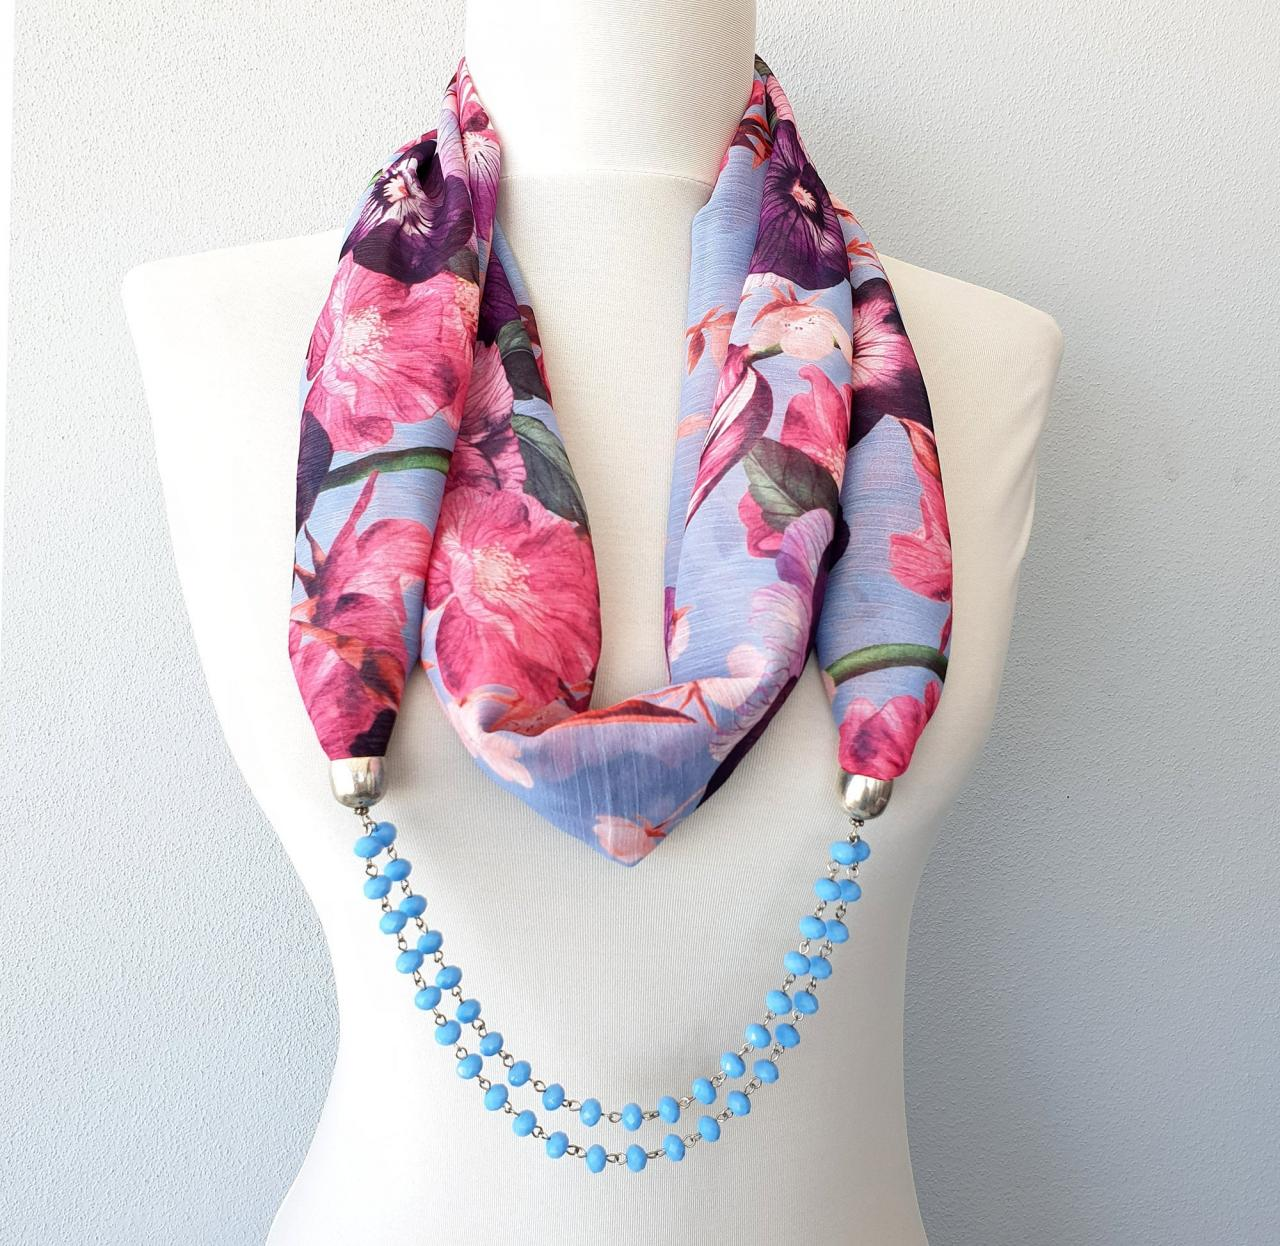 Blue beaded scarf necklace, floral infinity scarf with pansy print, birthday gift, retirement gift for her